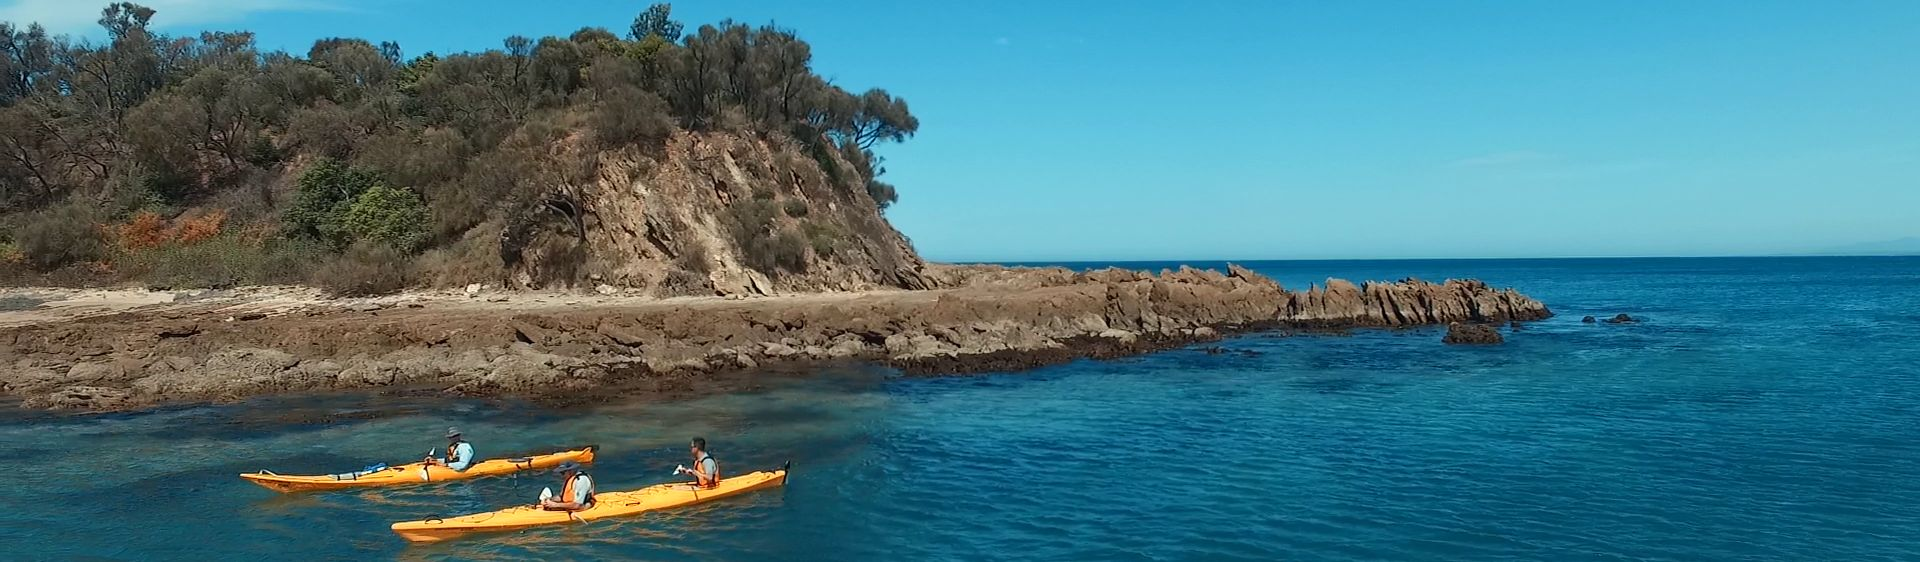 Kayaking  in the Eurobodalla region, South Coast NSW